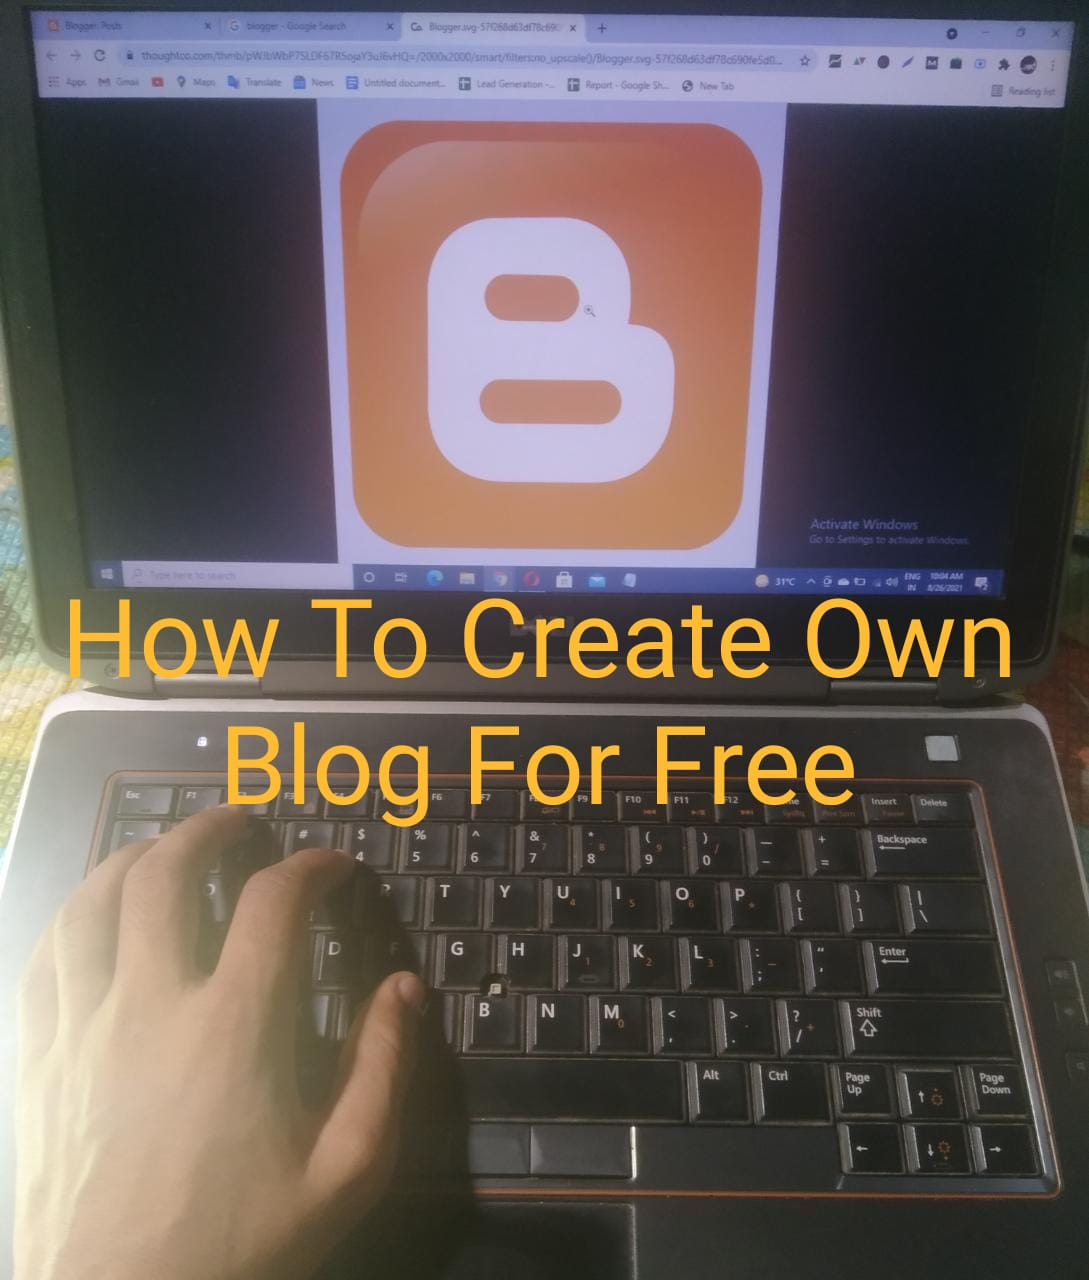 How To Crate Own Blog For Free On Google And Earn Money